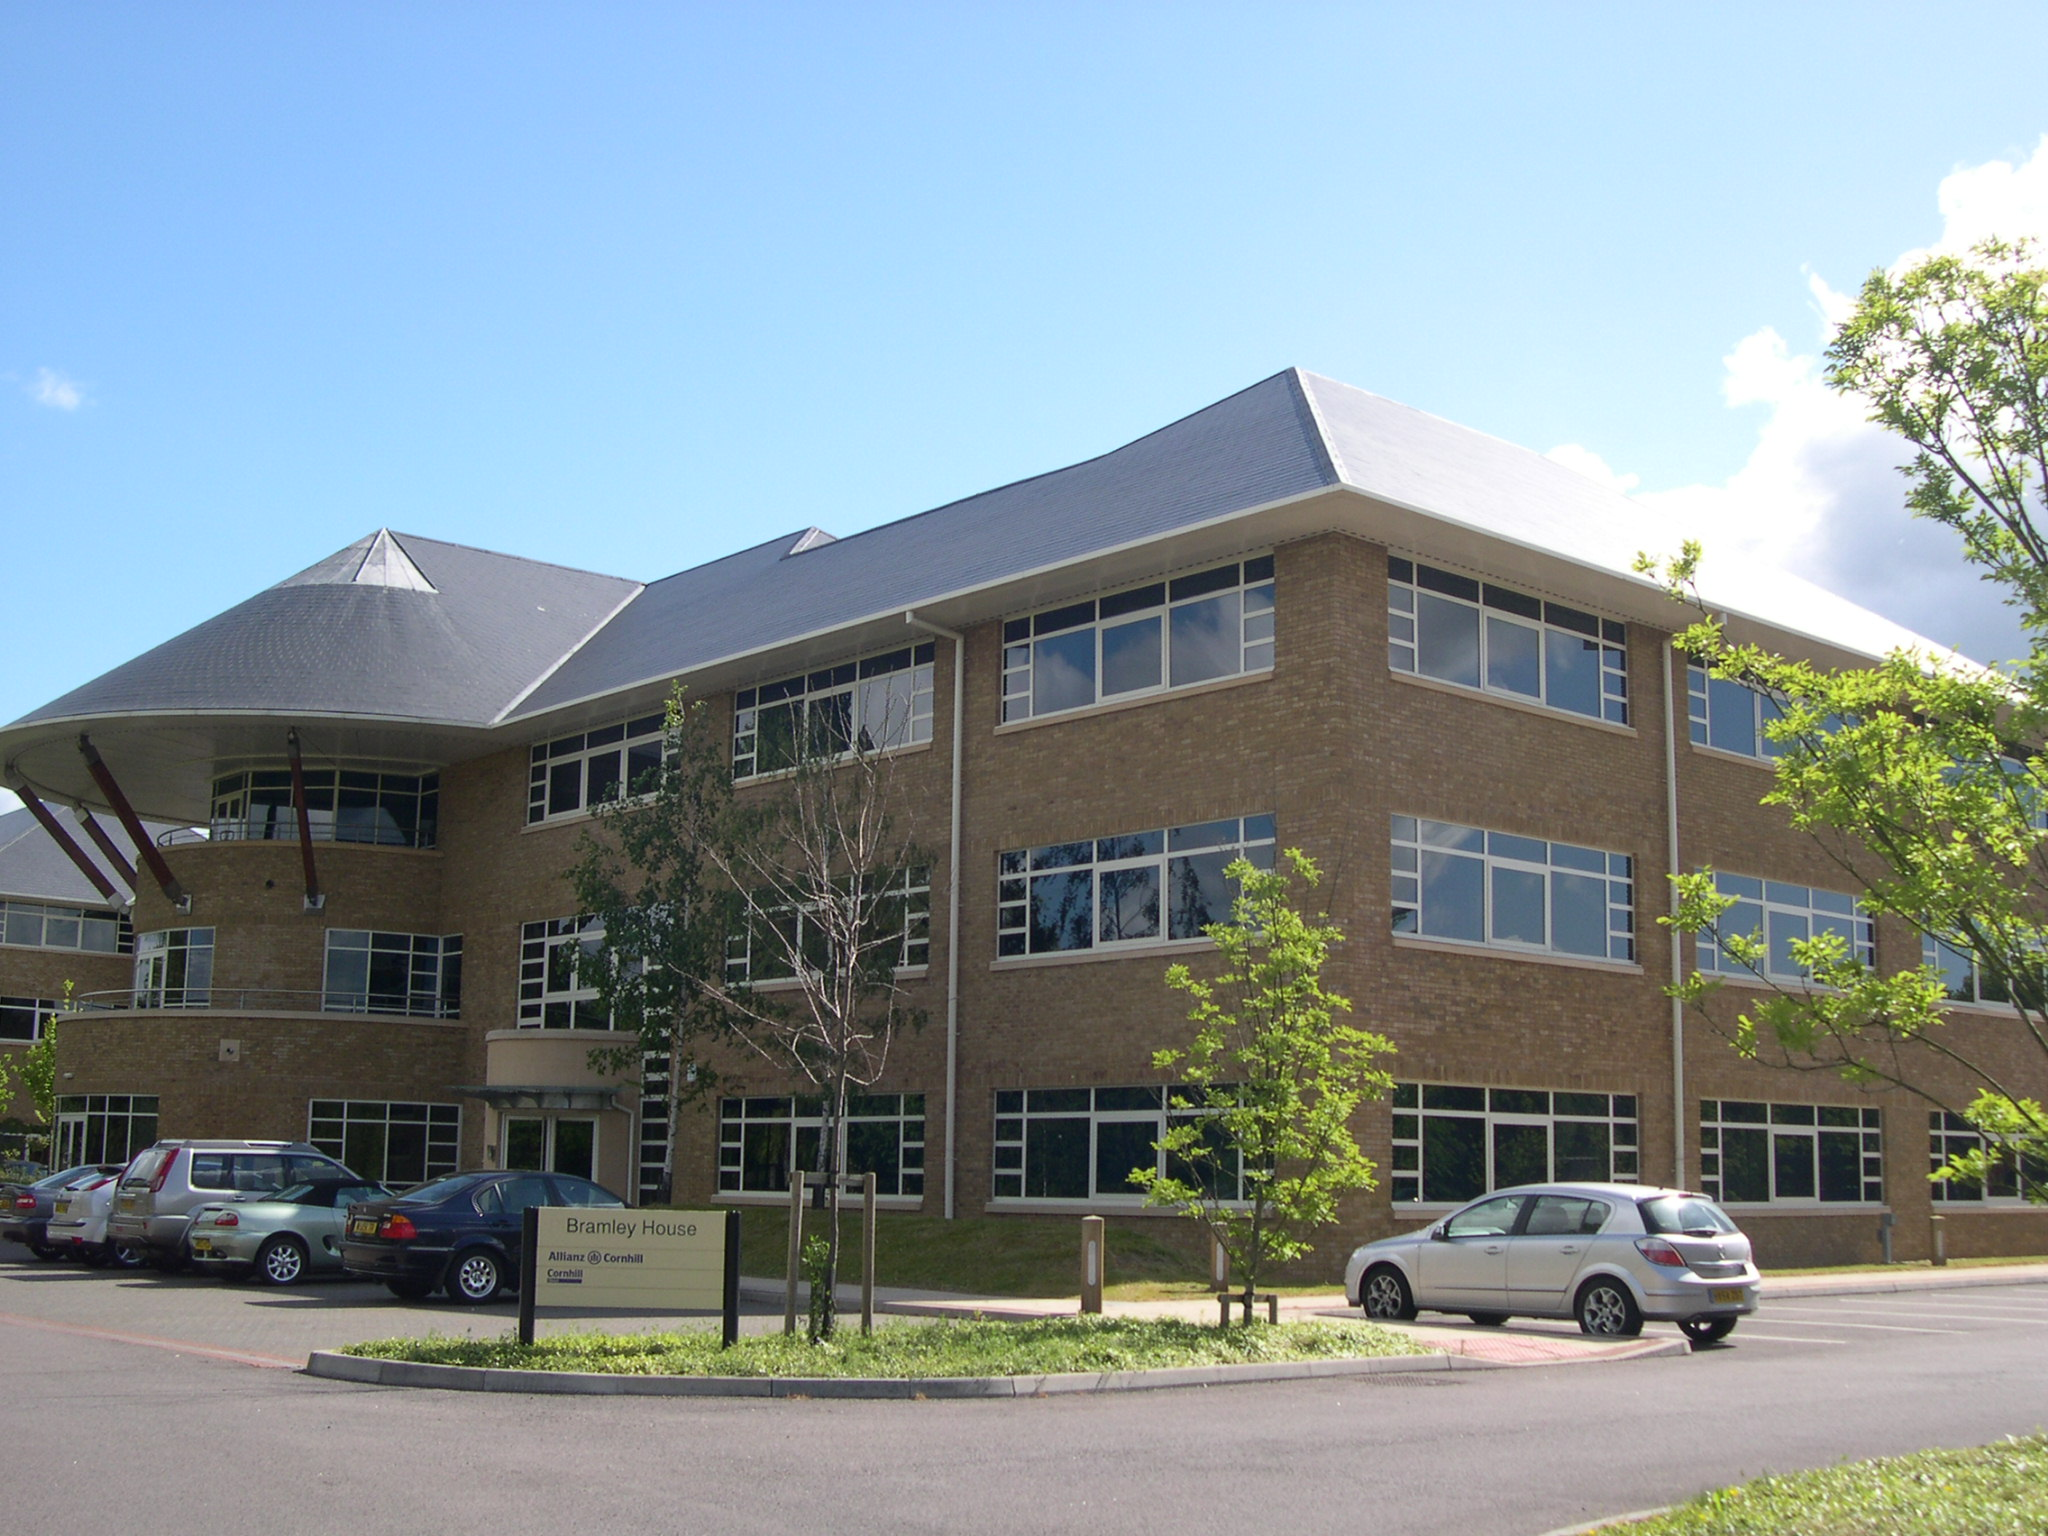 BRAMLEY HOUSE (1st Floor), The Guildway, Guildford